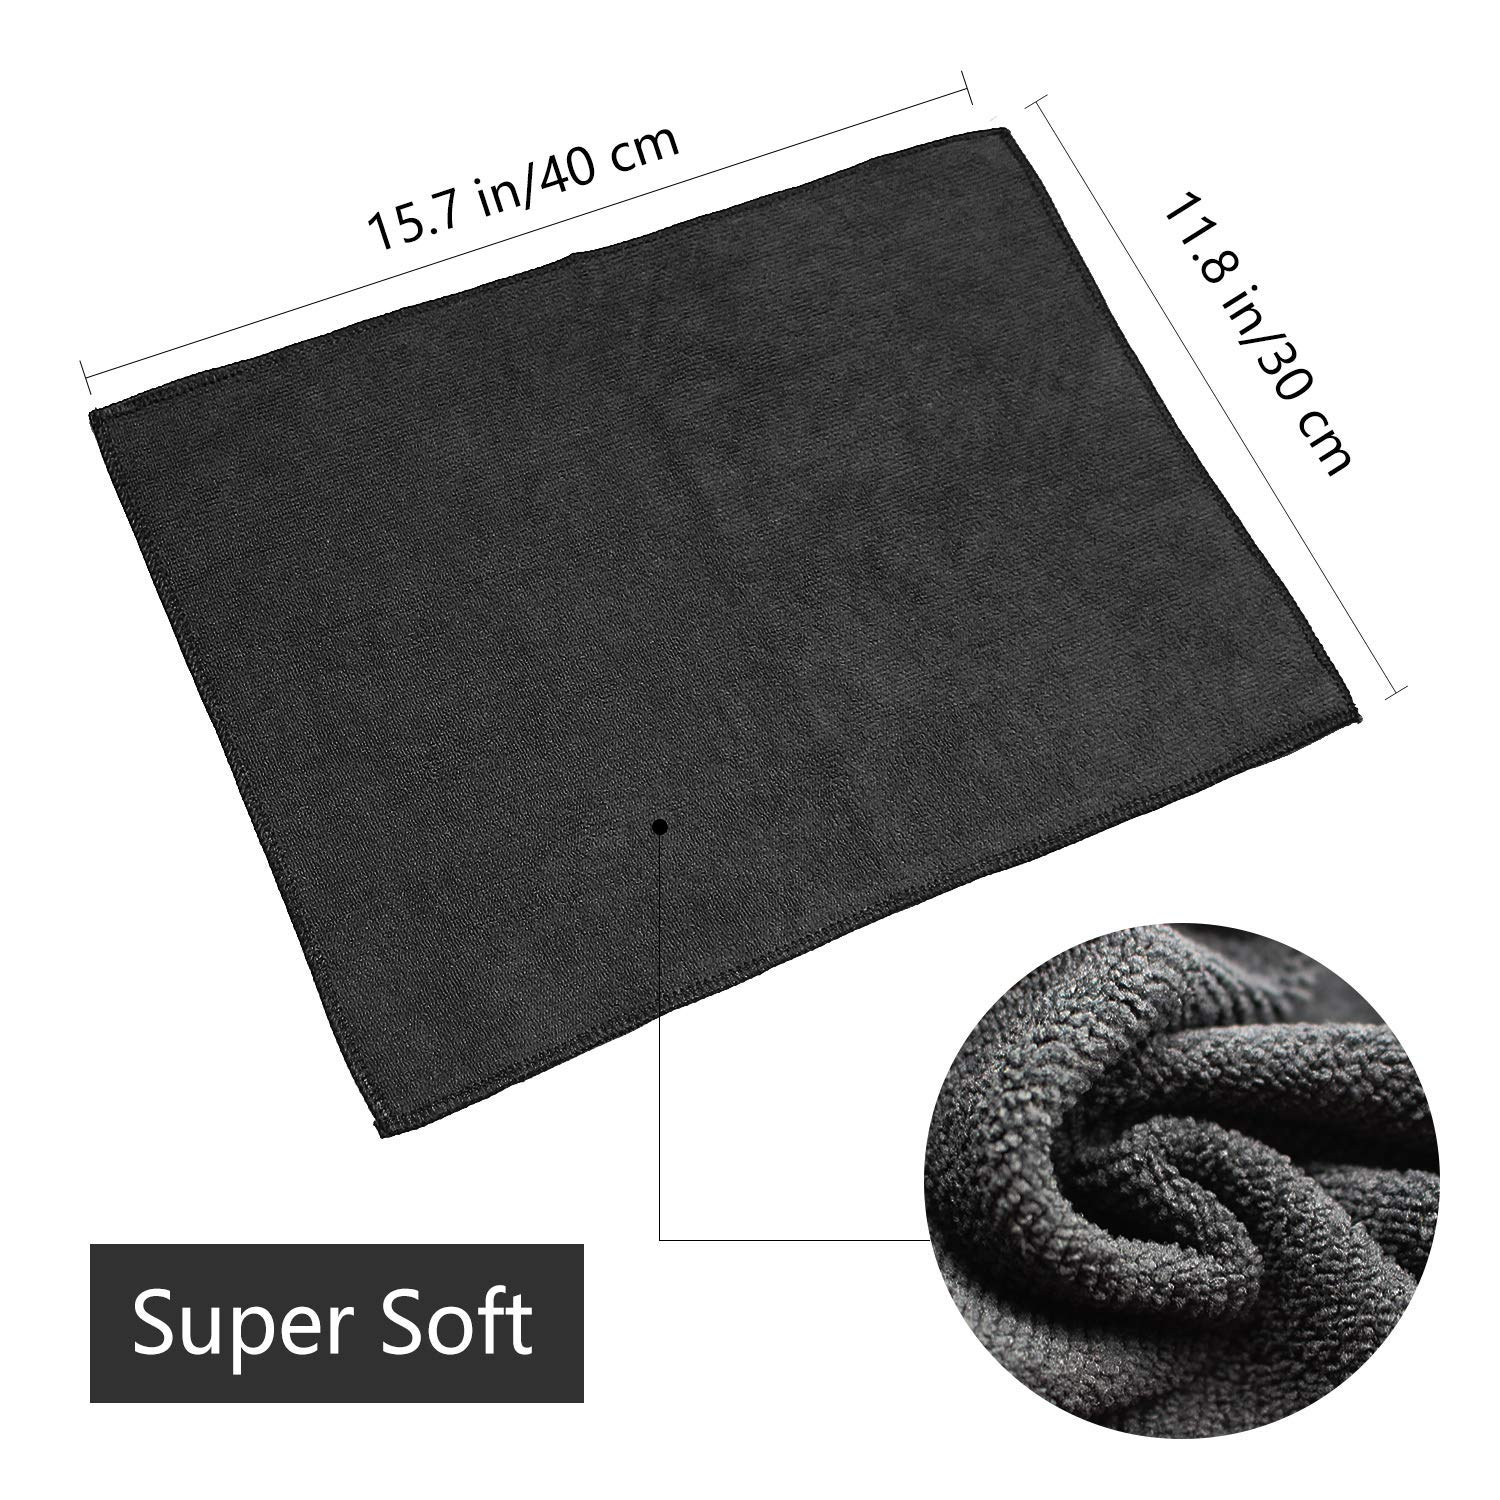 Microfibre Cleaning Cloths Lint Free Microfibre Towels Dish Cloths Car Cleaning Cloth for Polishing Washing and Dusting 10 Pack Black,30cm * 40cm